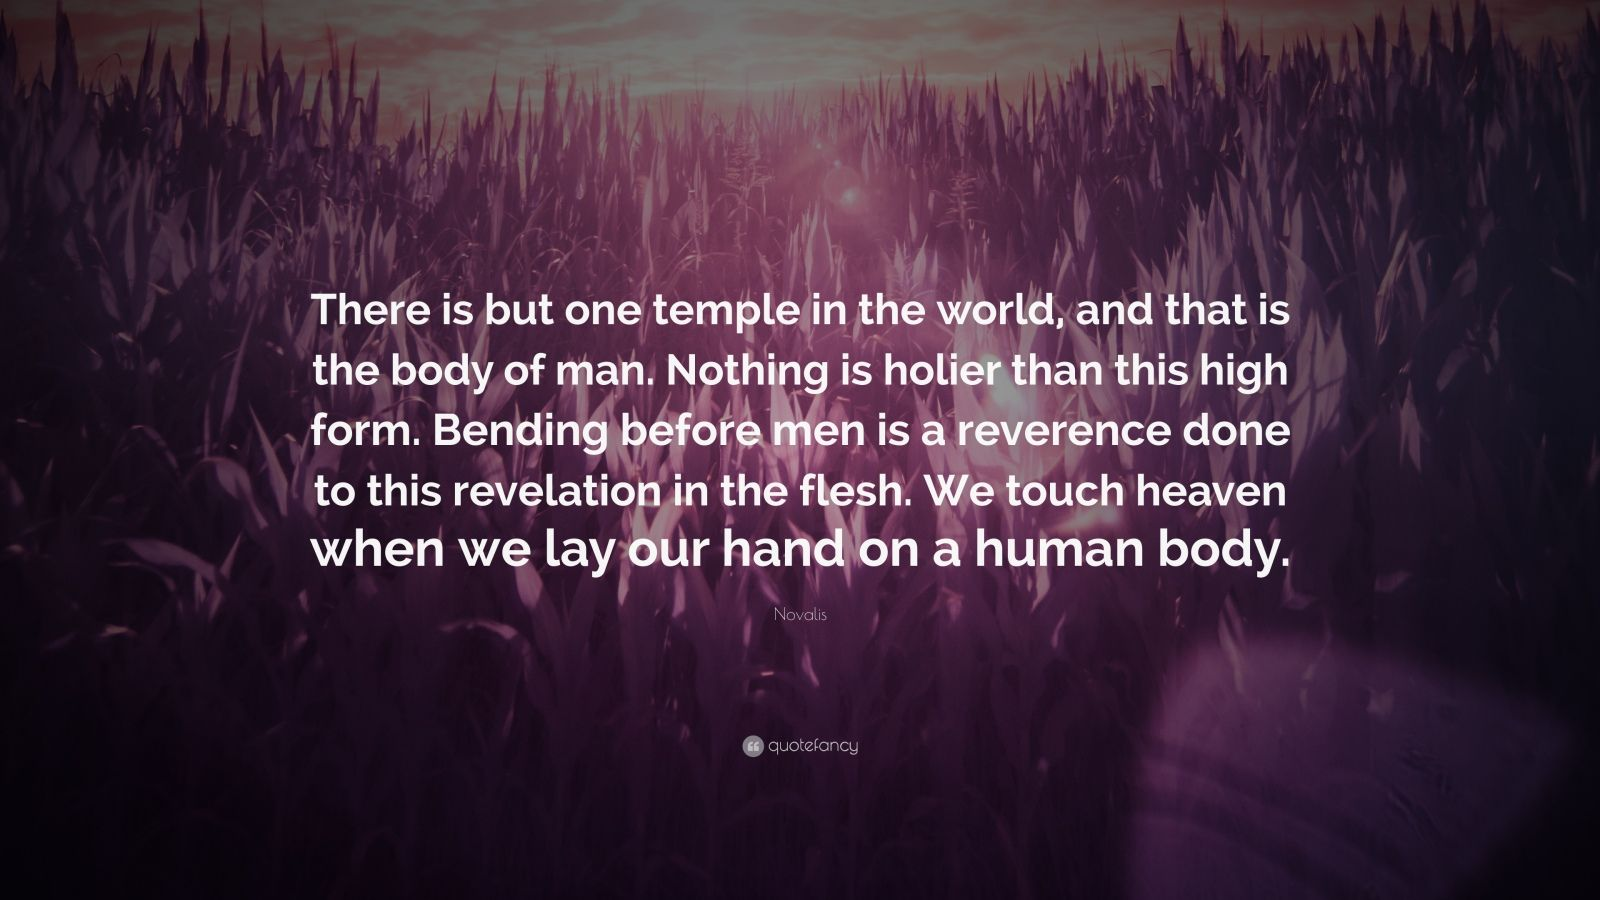 """Novalis Quote: """"There is but one temple in the world, and that is the body of man. Nothing is holier than this high form. Bending before men is a reverence done to this revelation in the flesh. We touch heaven when we lay our hand on a human body."""""""